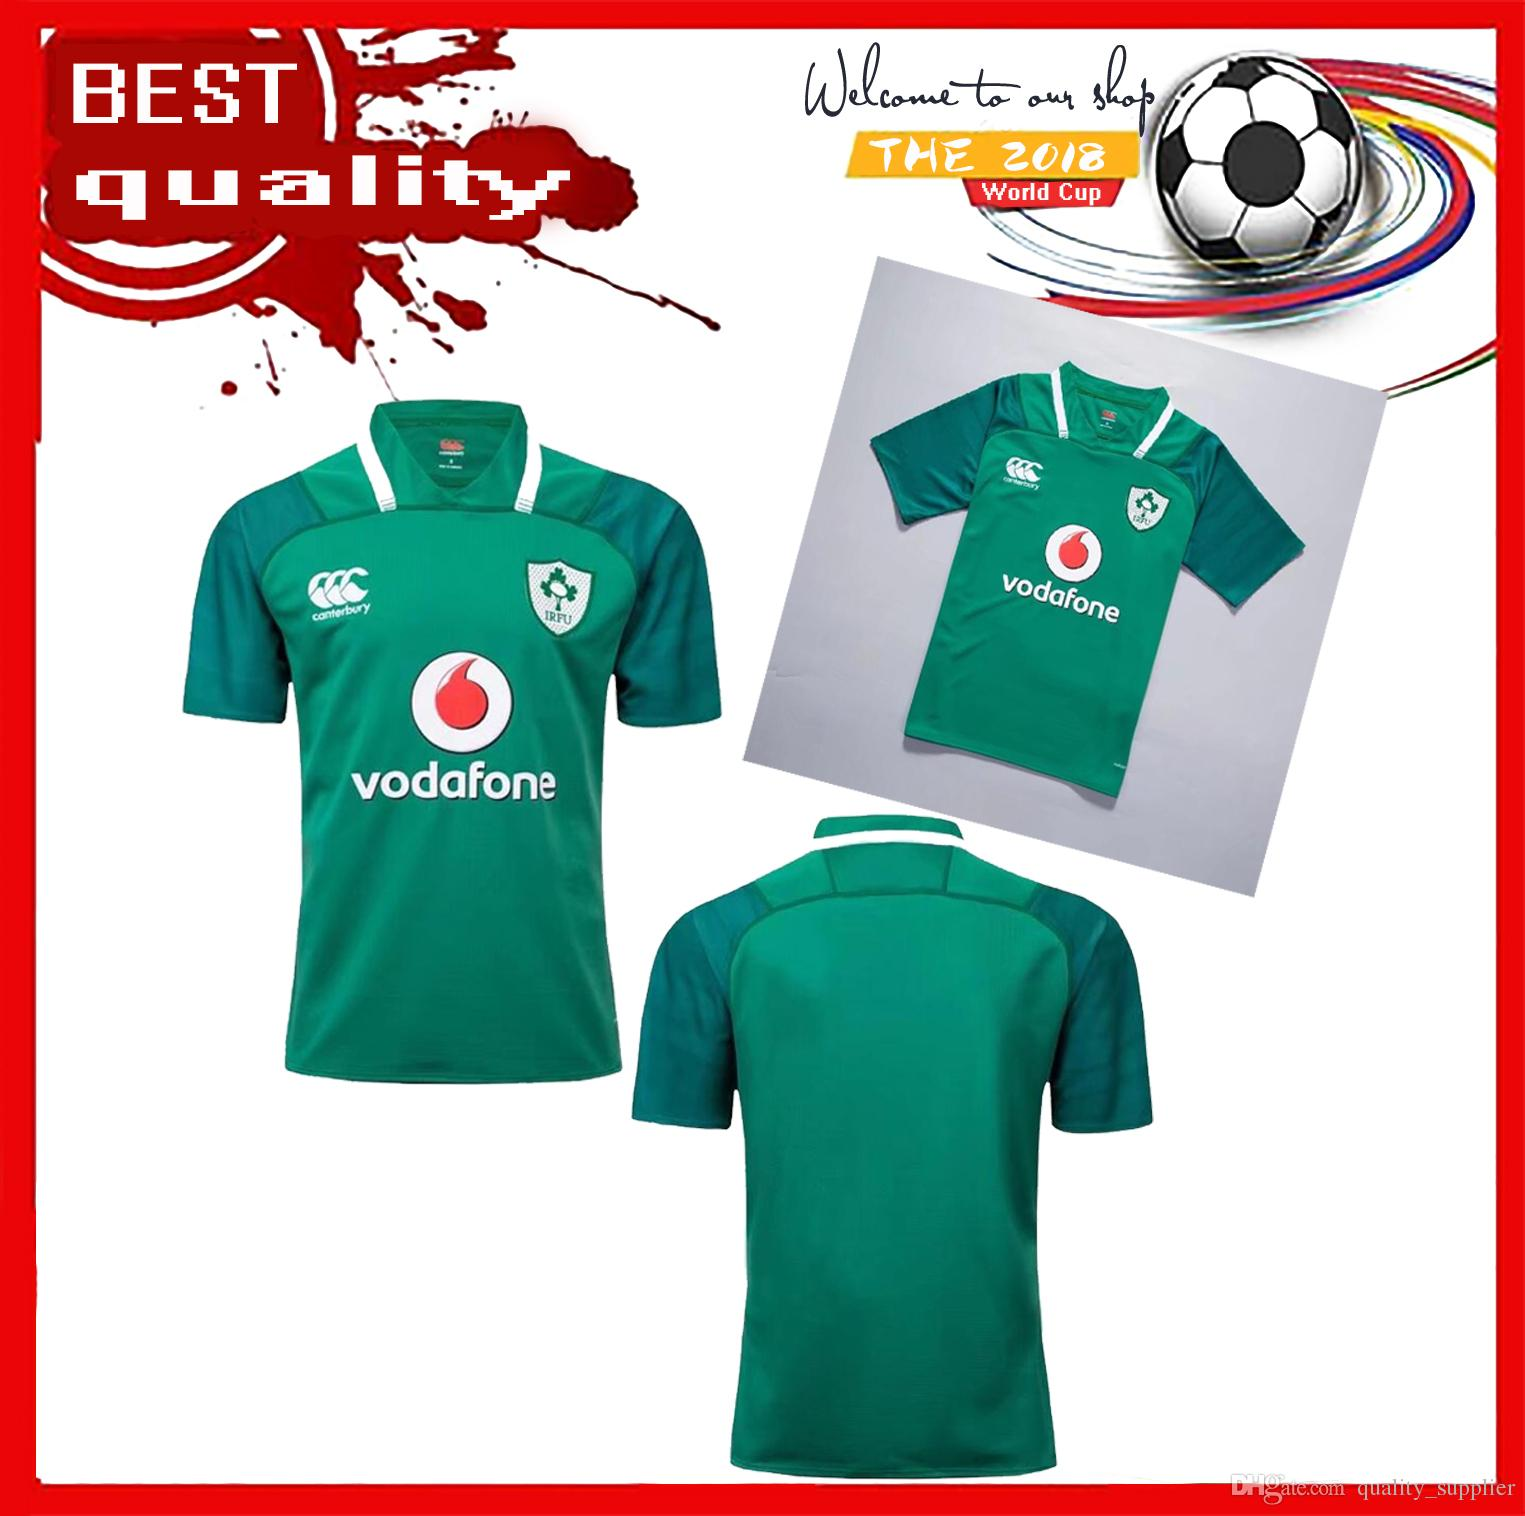 huge selection of 65638 c6f36 2017 Leinster rugby jerseys 16 17 Ireland league Leinster away Irish rugby  shirts top quality jerseys Size S-3XL